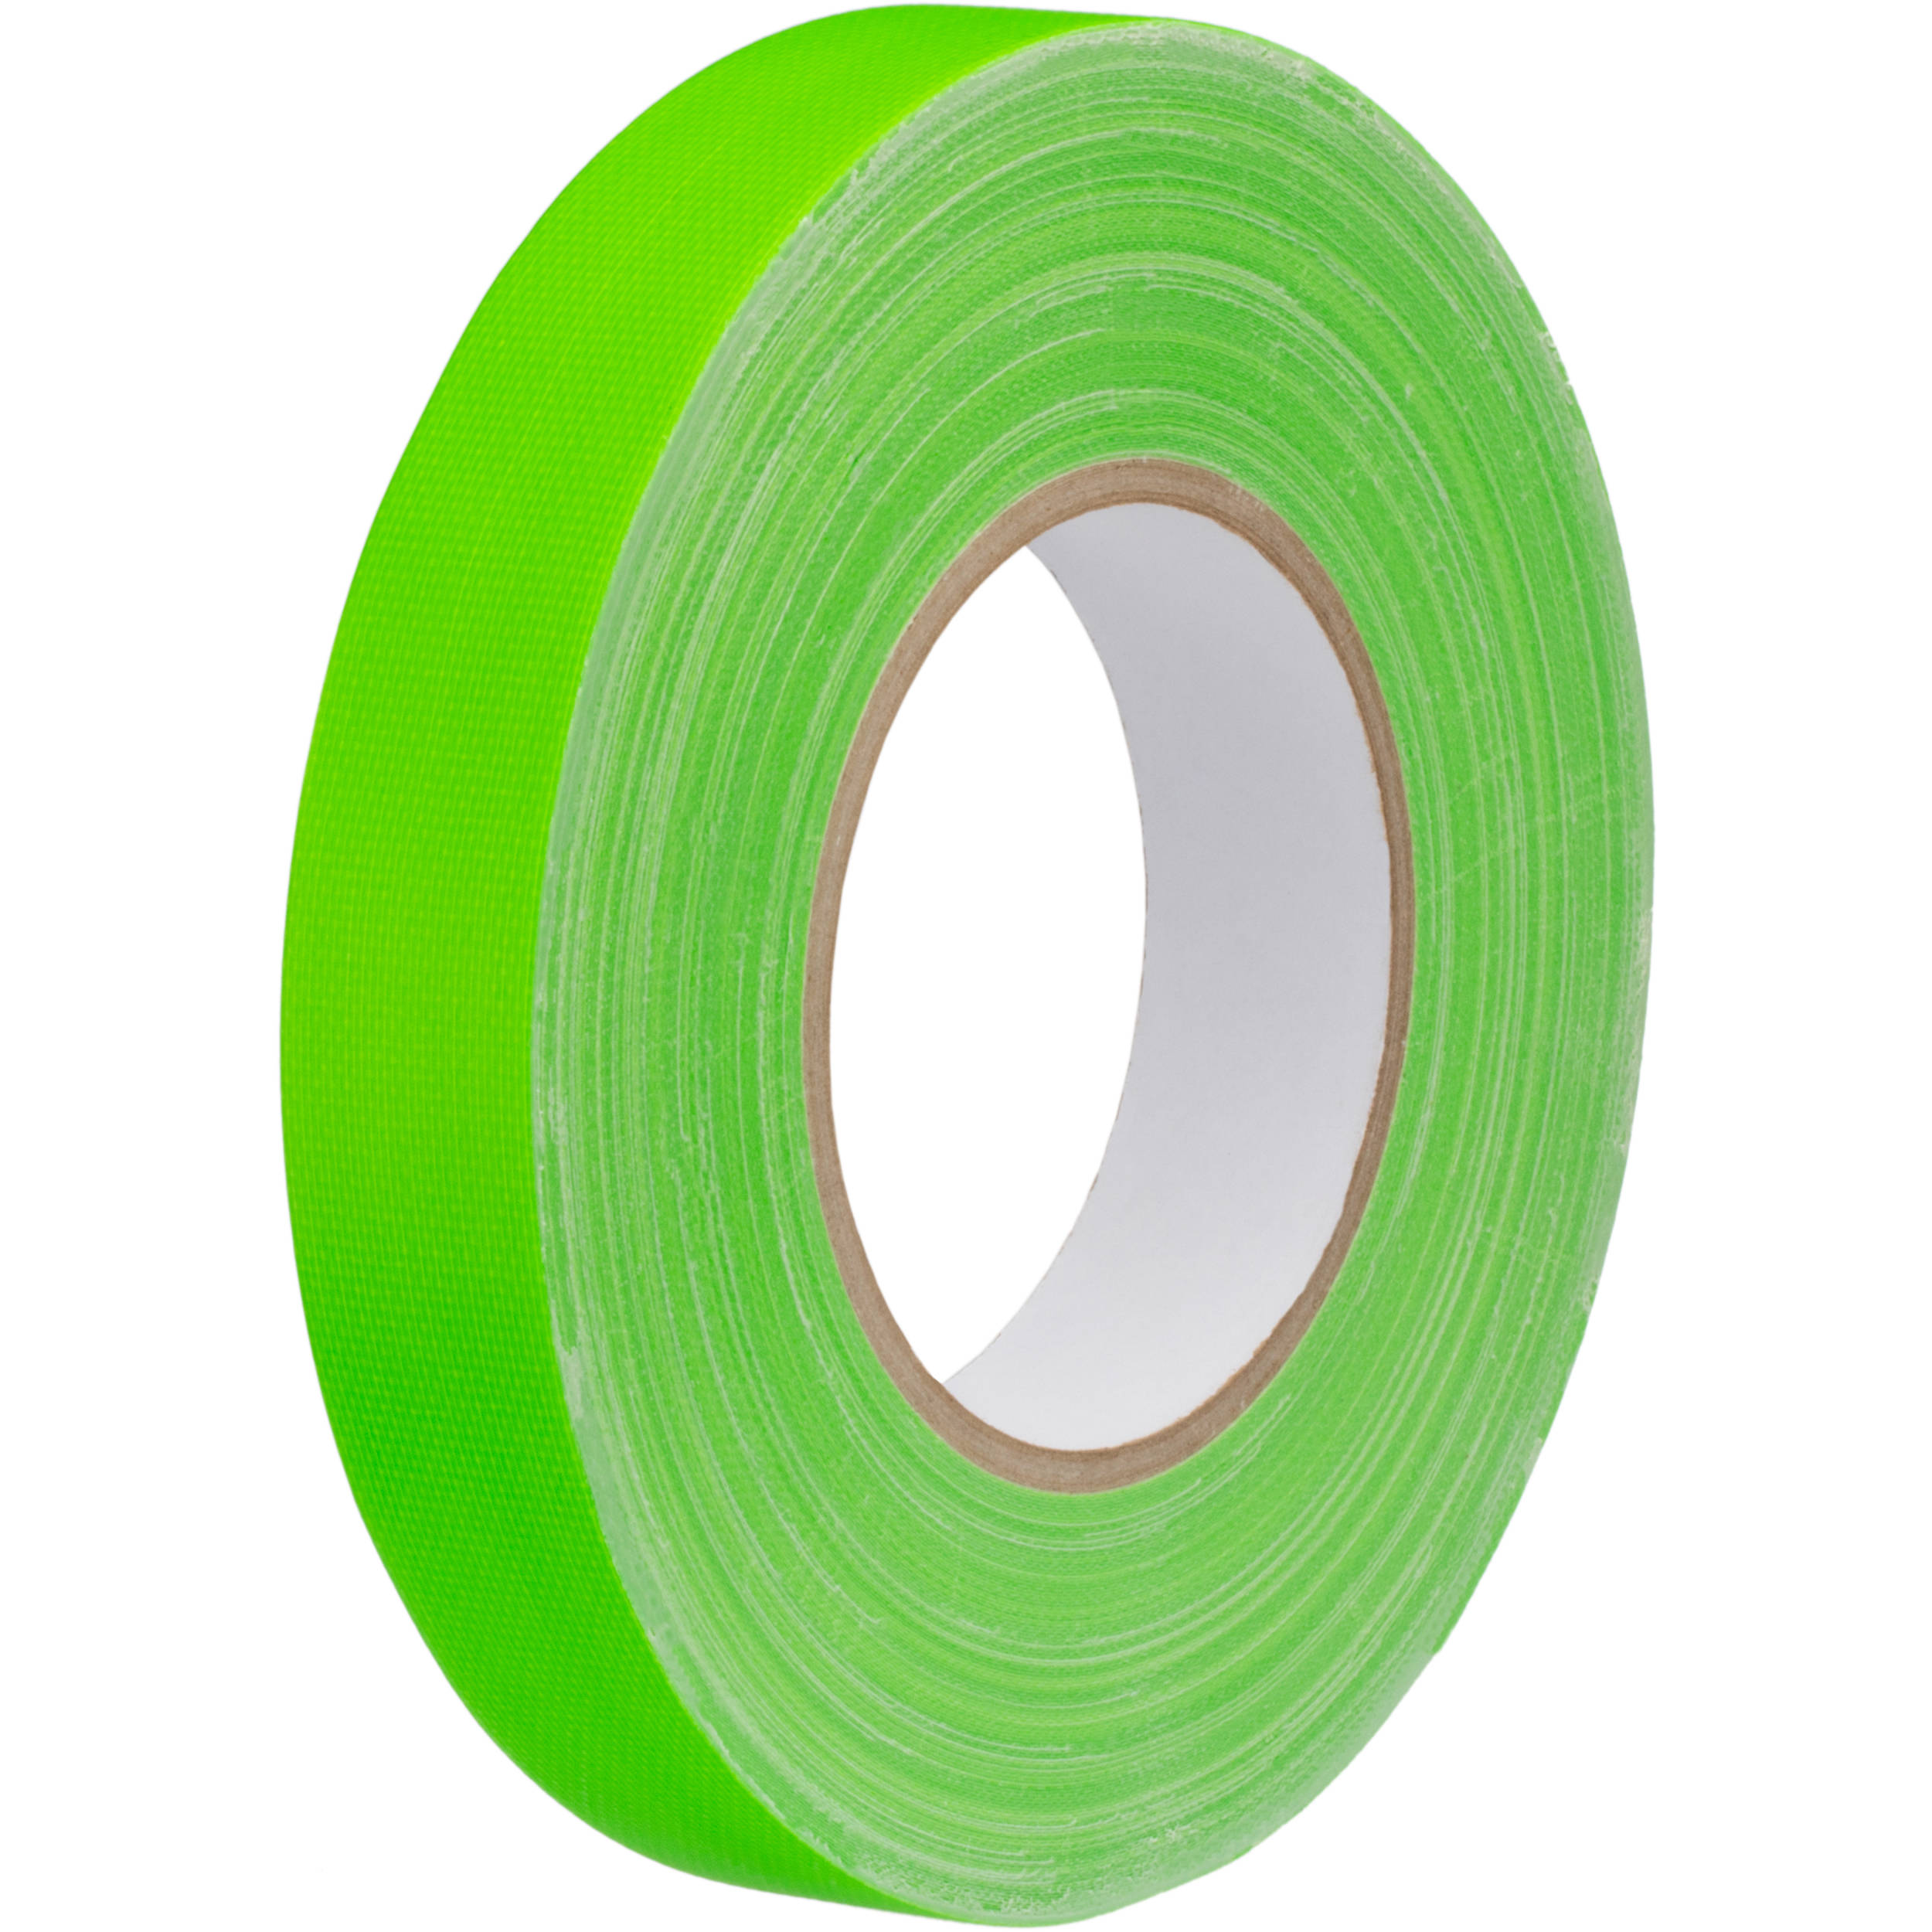 "ProTapes Pro Gaff NEON GAFFERS TAPE 5 Color Pack 1/"" x 50 yd Roll"